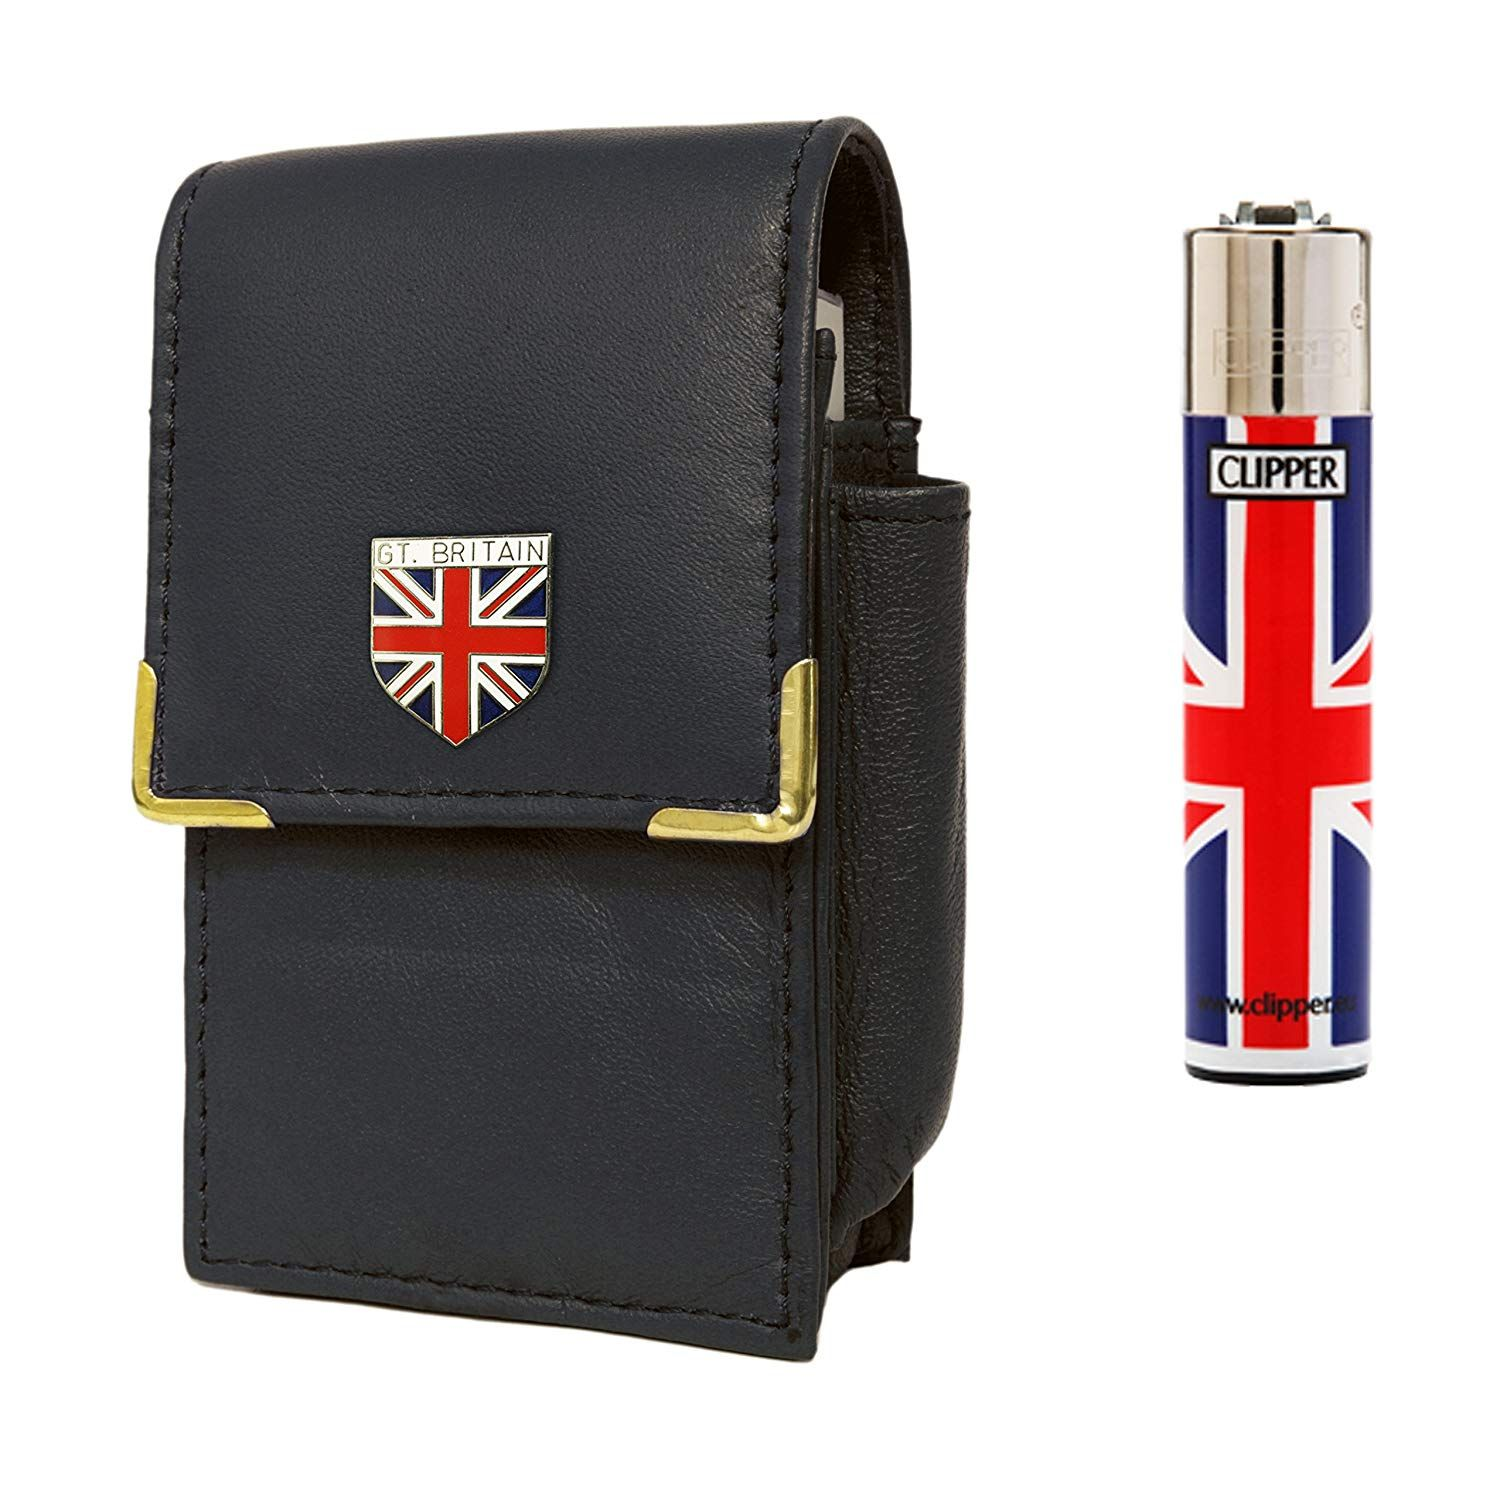 736144c5d7ef Great Britain Union Jack cigarette packet holder and Clipper gas lighter   Amazon.co.